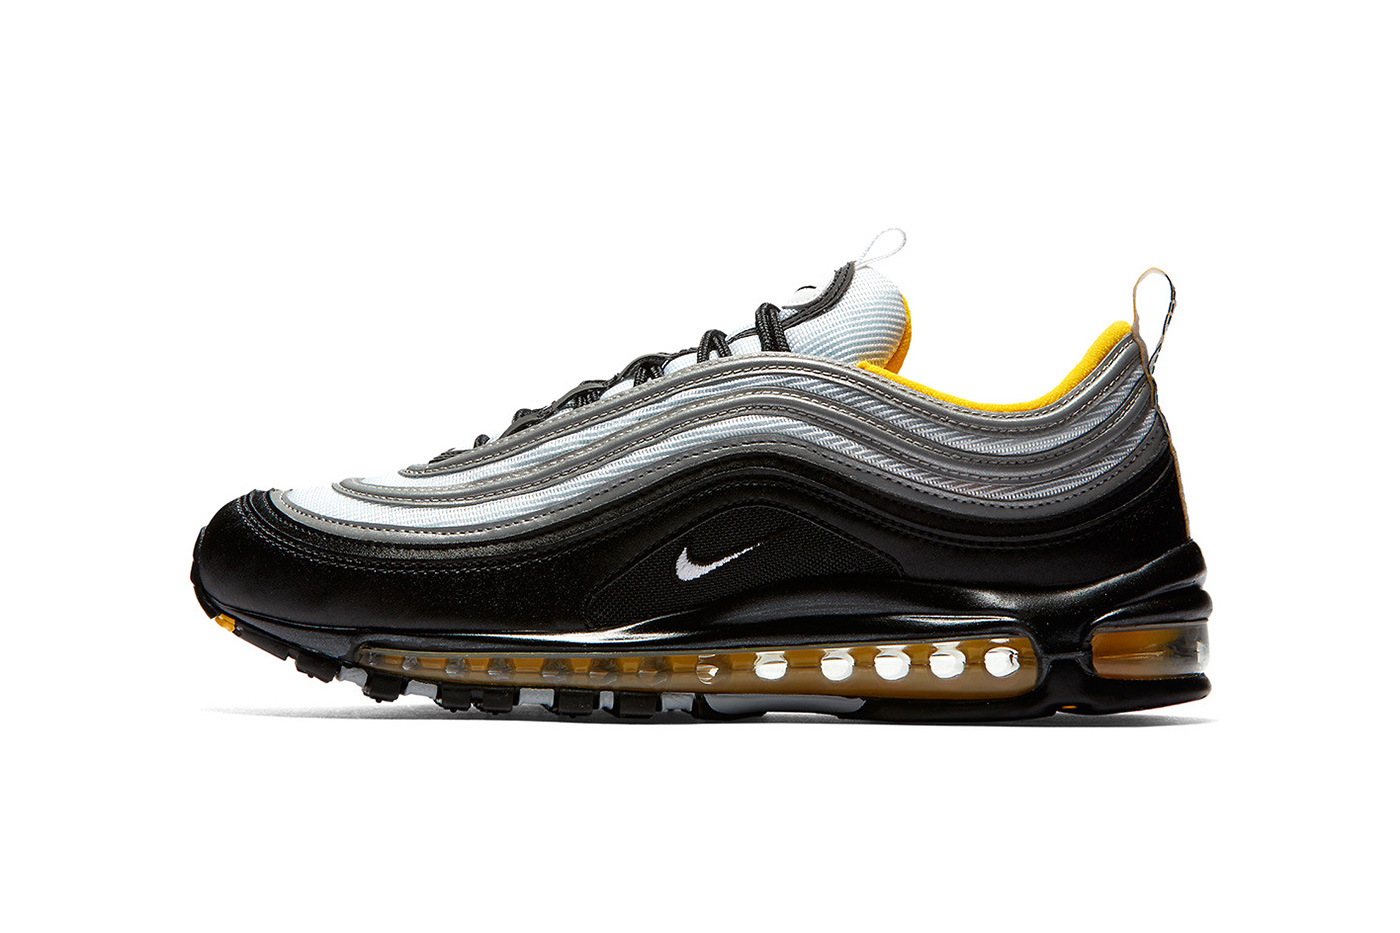 Nike Air Max 97 In Black White Yellow Hypebeast